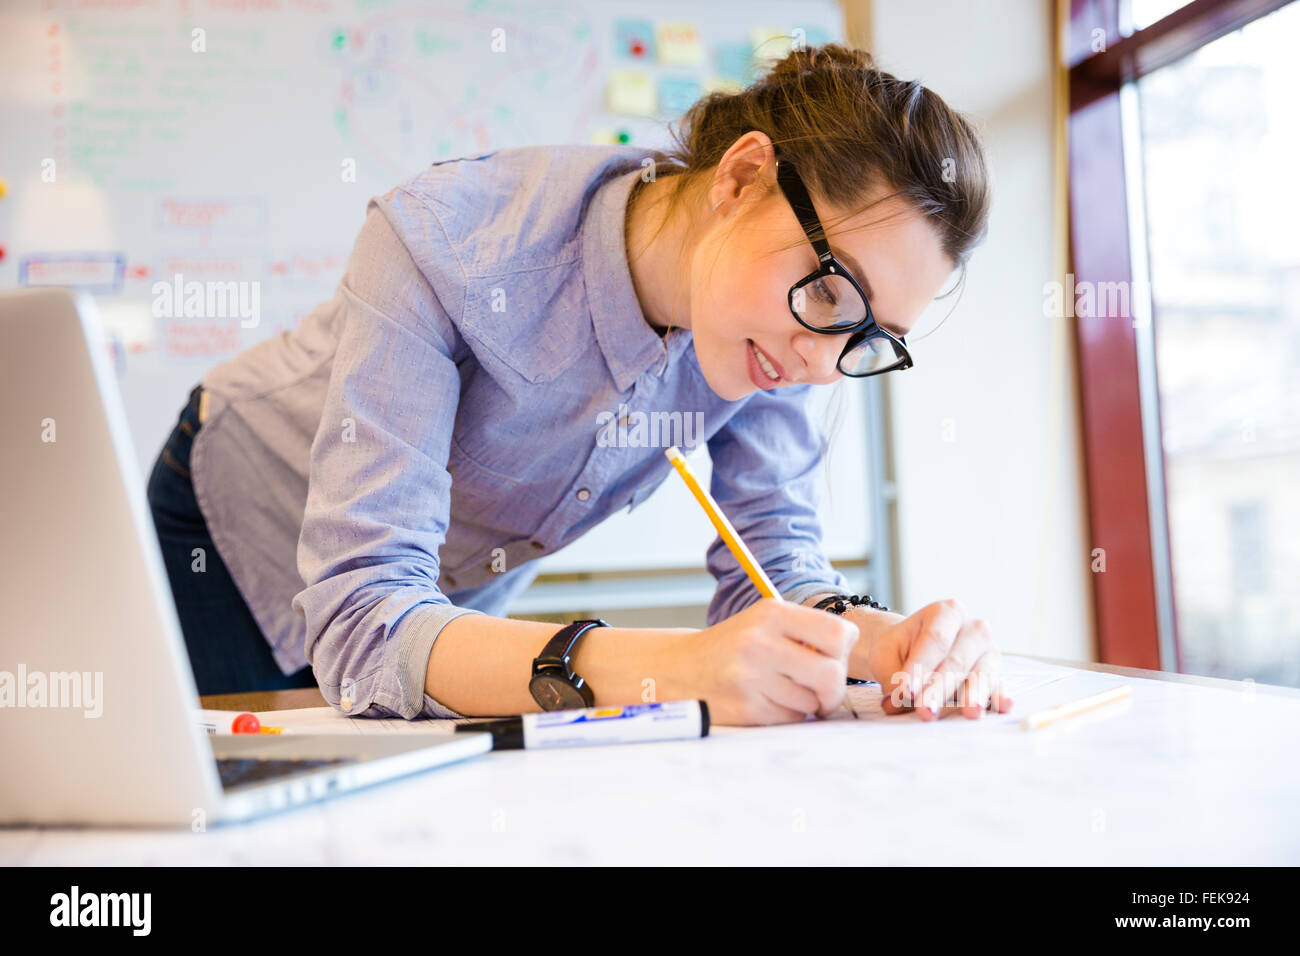 Smiling pretty young woman drawing blueprint on the table near the window - Stock Image